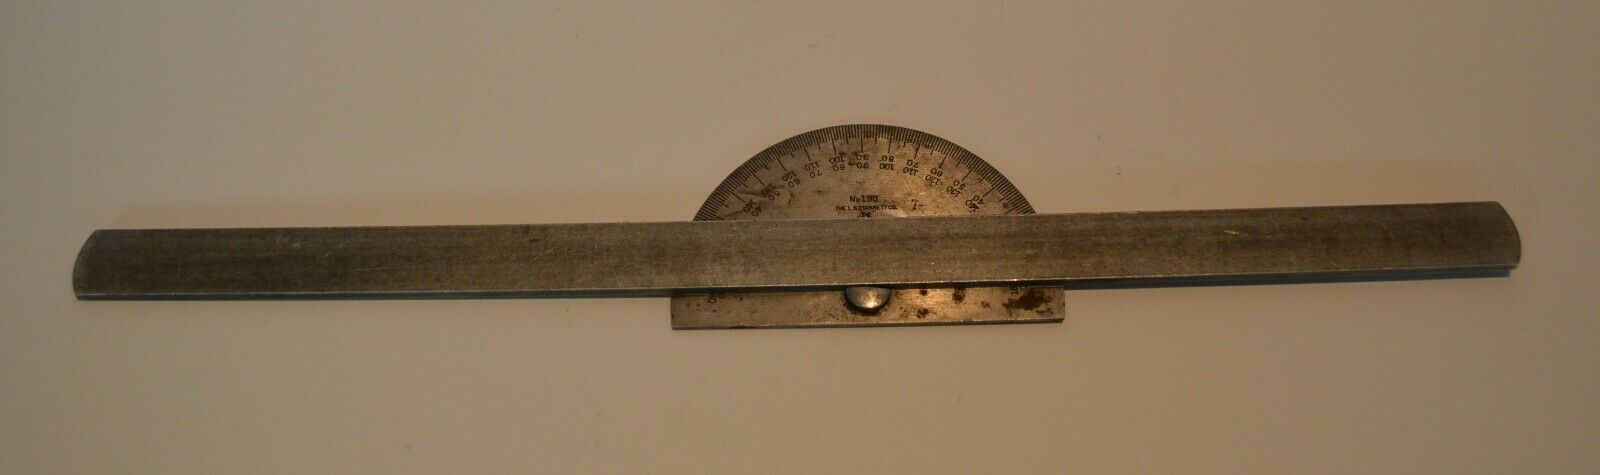 The L.S. Starrett No. 193 Vintage Protractor With Bar - $20.00